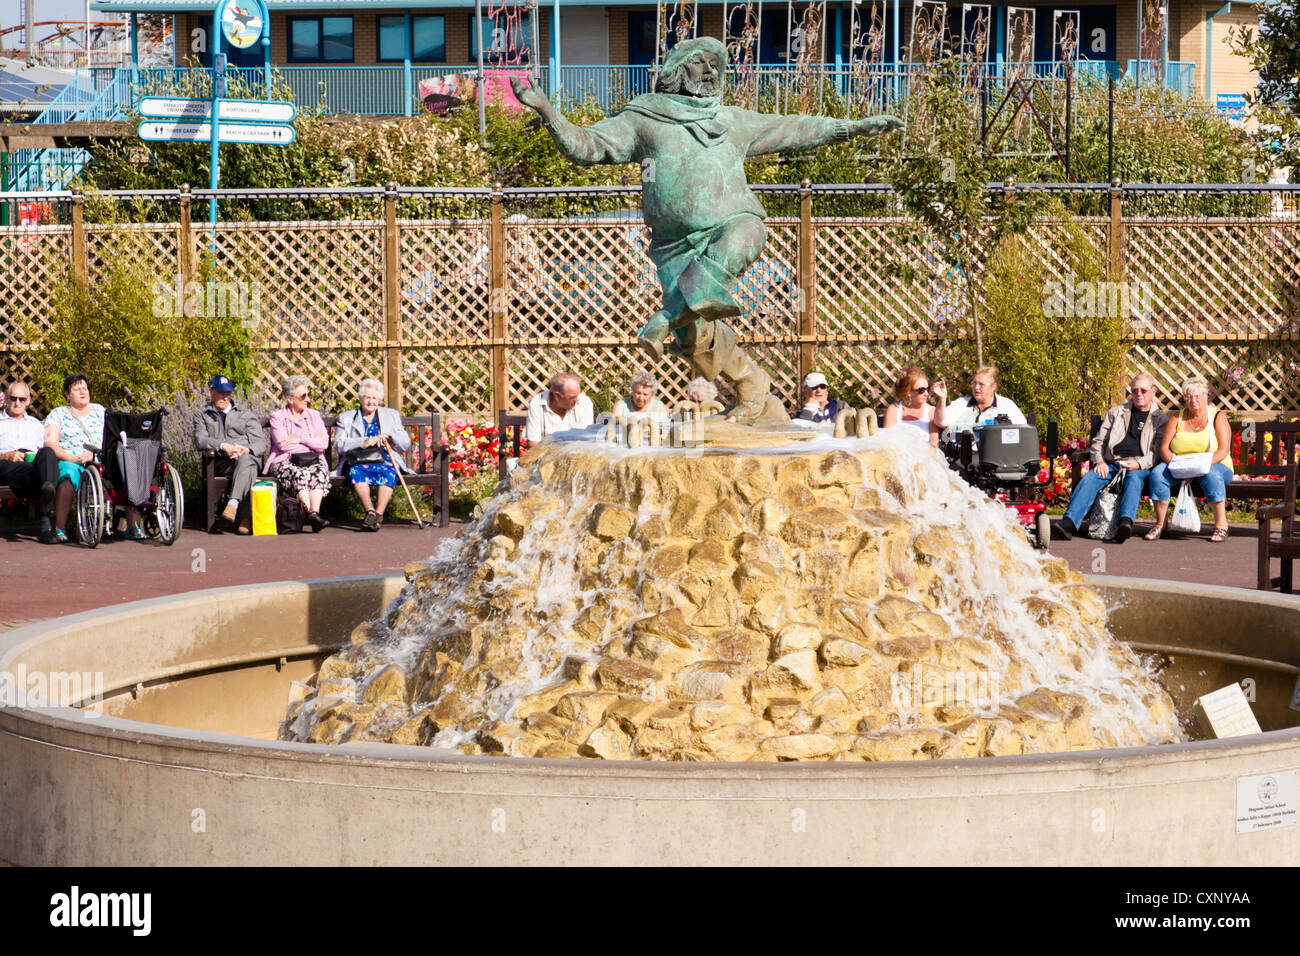 People on holiday sitting around the Jolly Fisherman sculpture in Skegness, Lincolnshire, England, UK - Stock Image